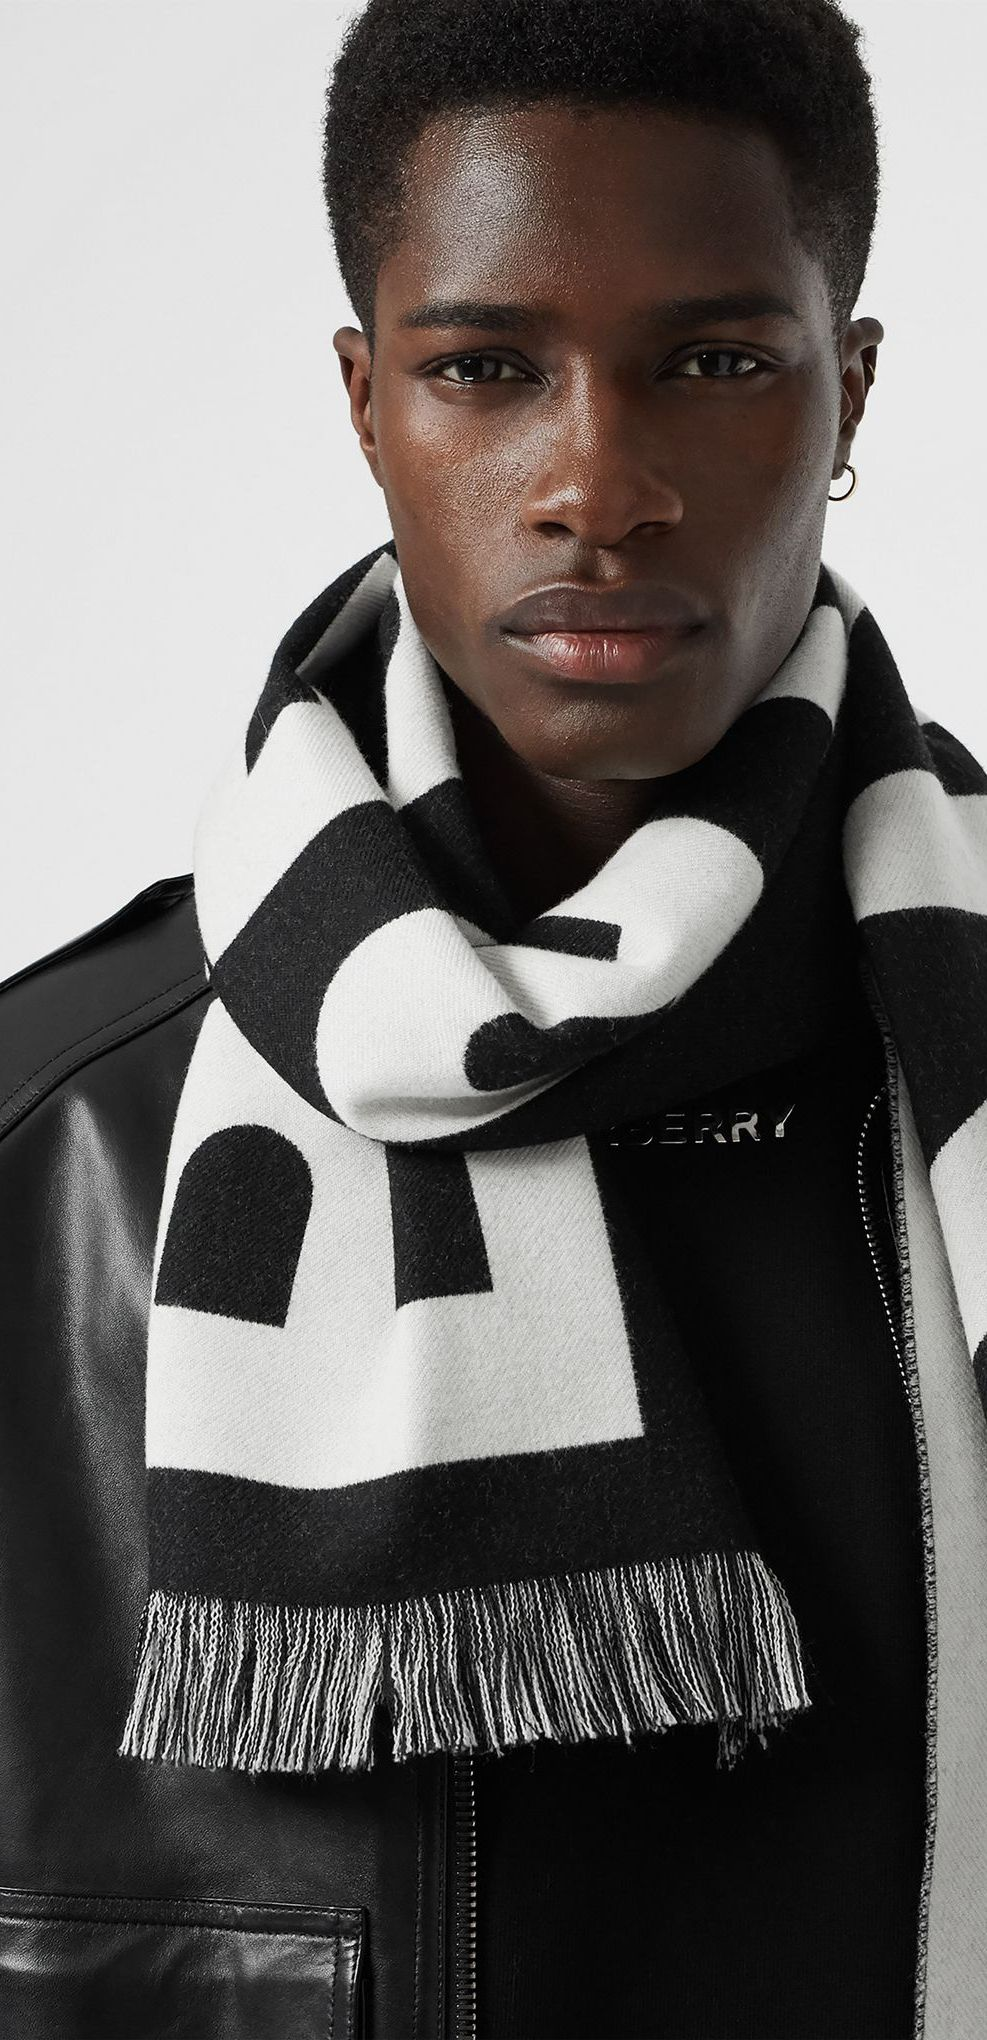 The Burberry footballstyle scarf modernised in